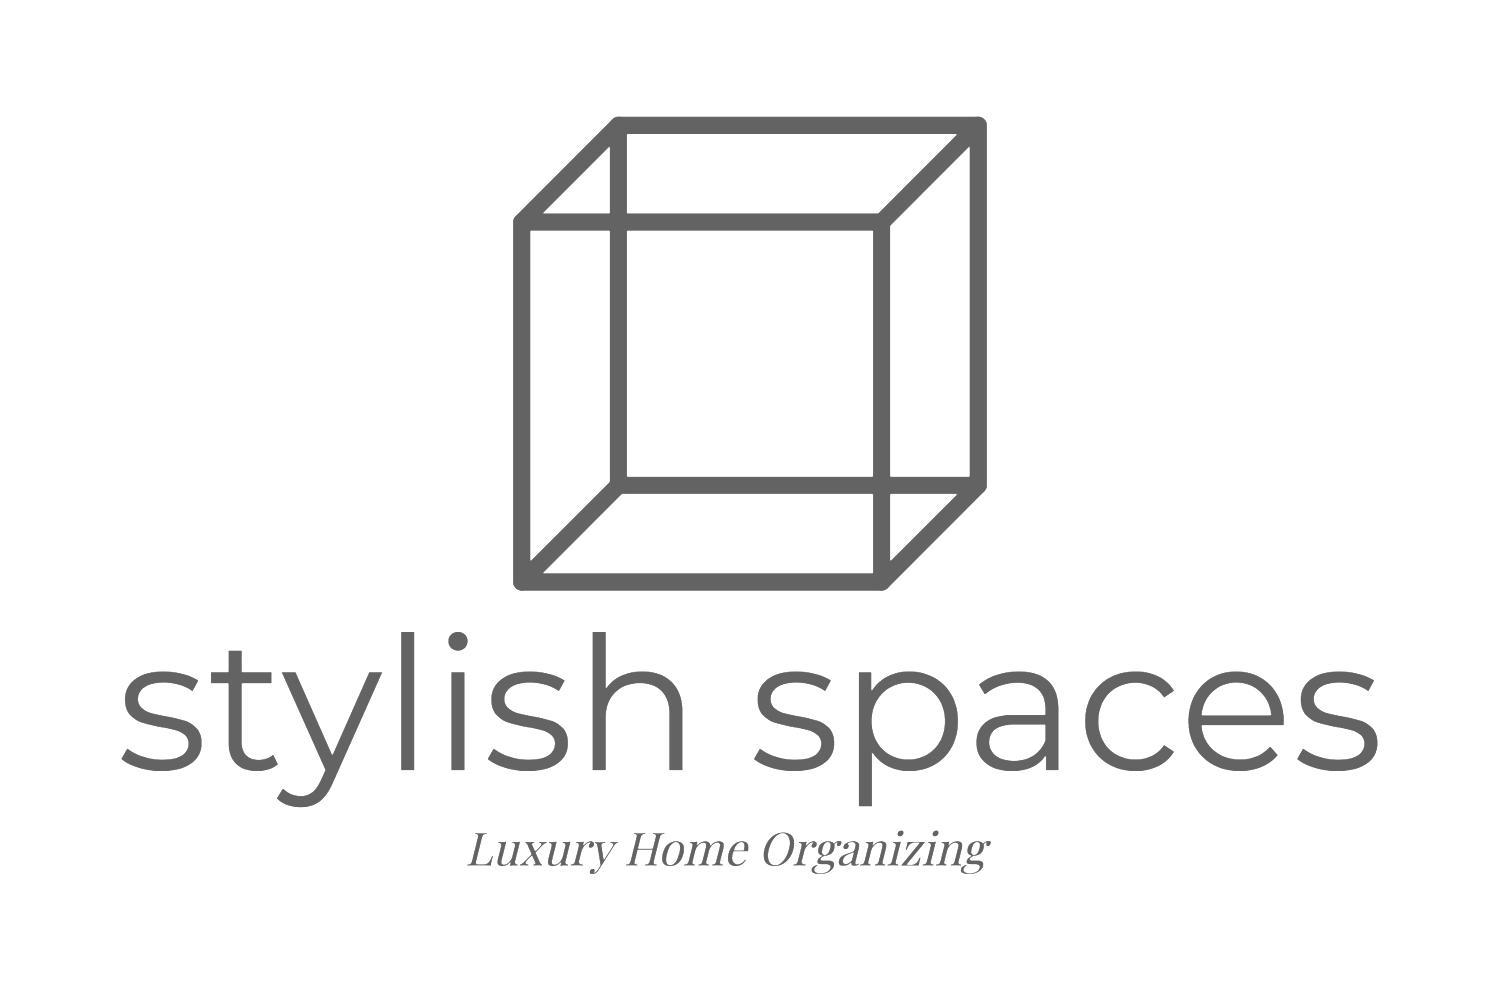 Stylish Spaces